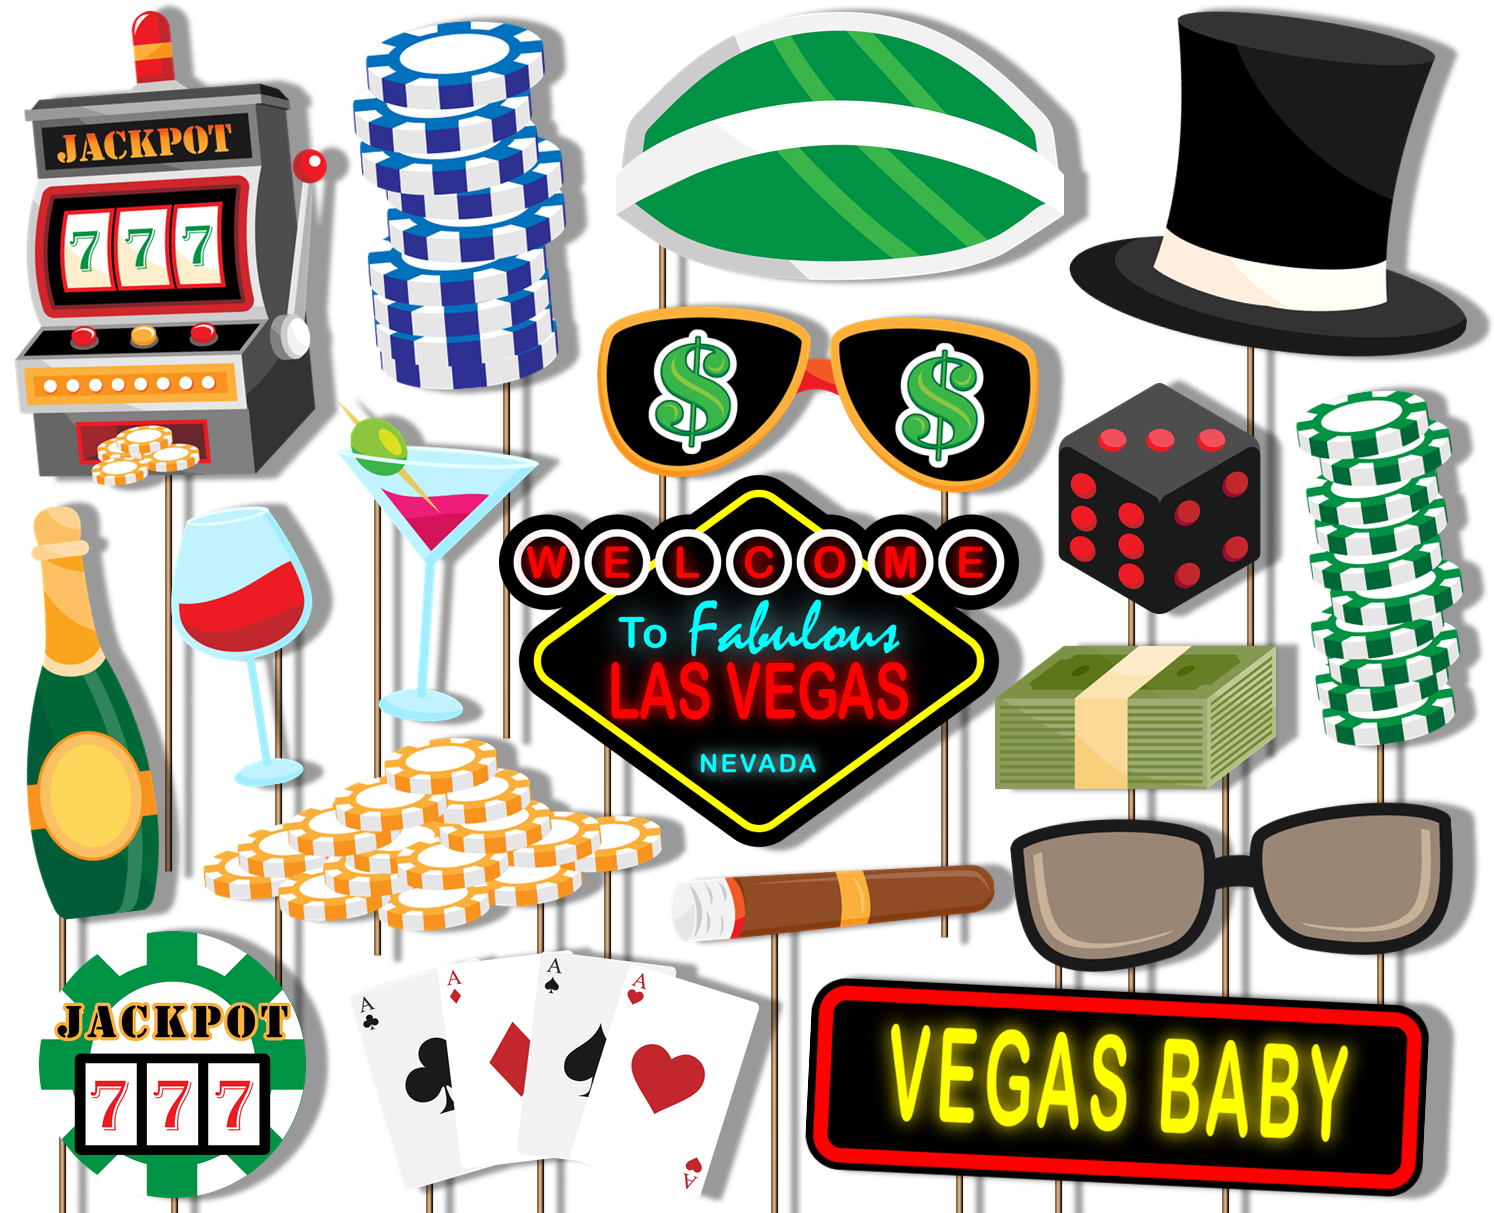 Las Vegas Casino Photo Booth Props 20pcs Assembled - BirthdayGalore.com